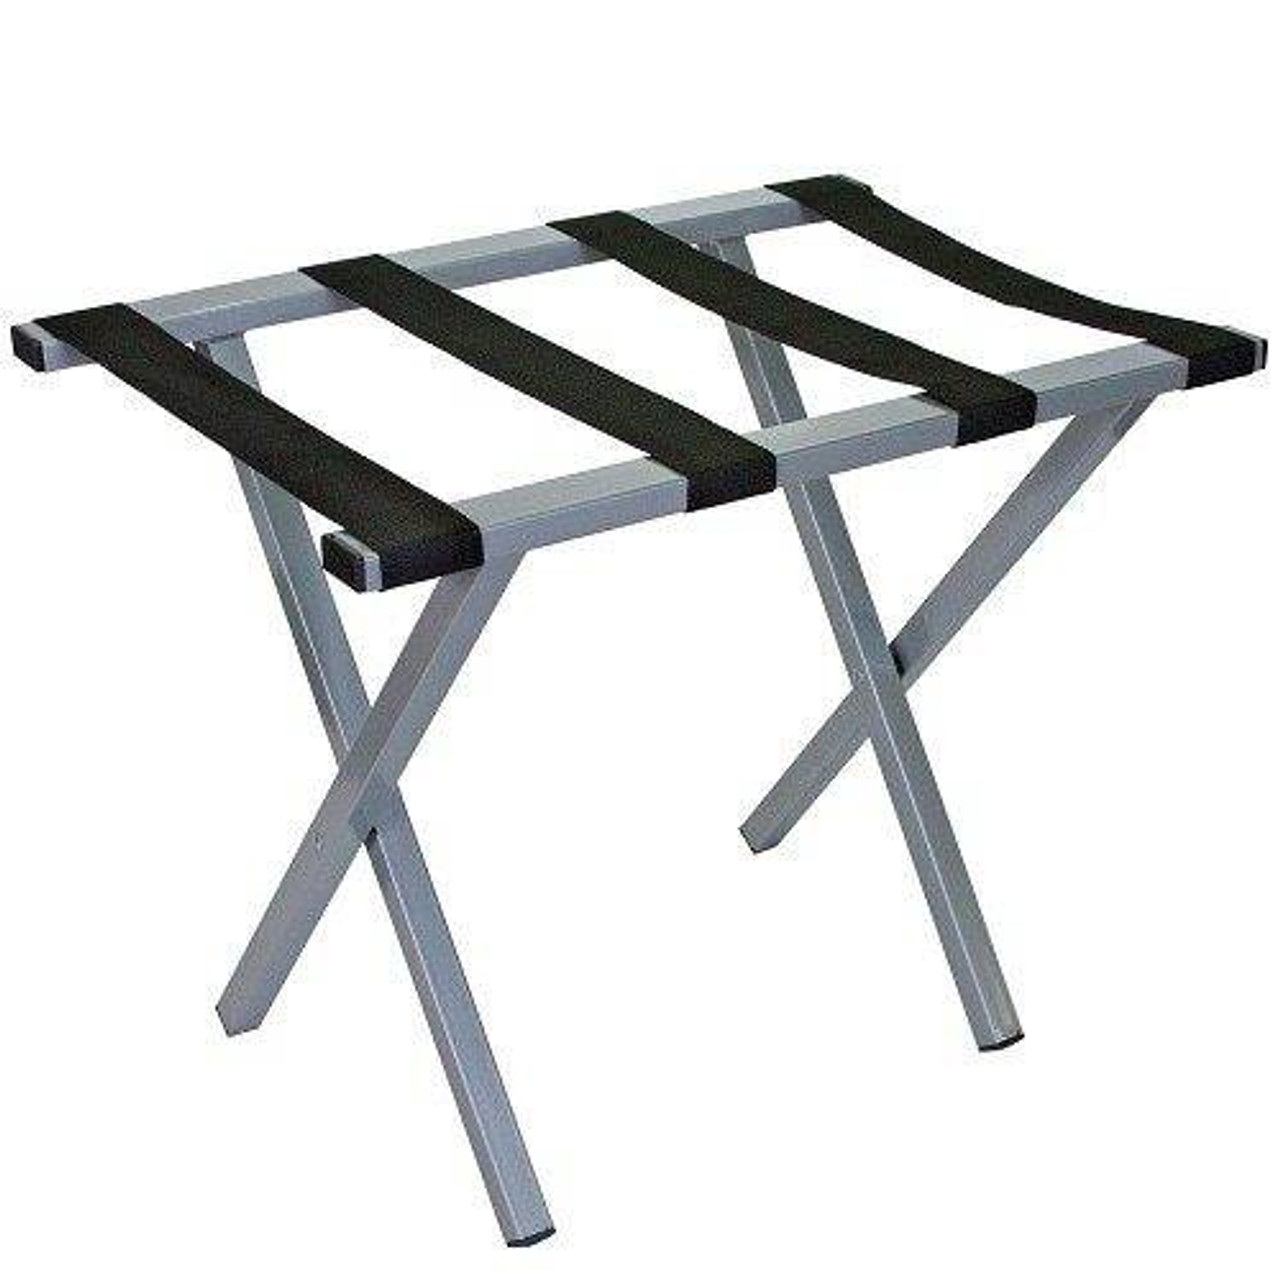 HOSPITALITY 1 SOURCE LUGGAGE RACK or METROPOLITAN or HOSPITALITY 1 SOURCE - ALL STYLES